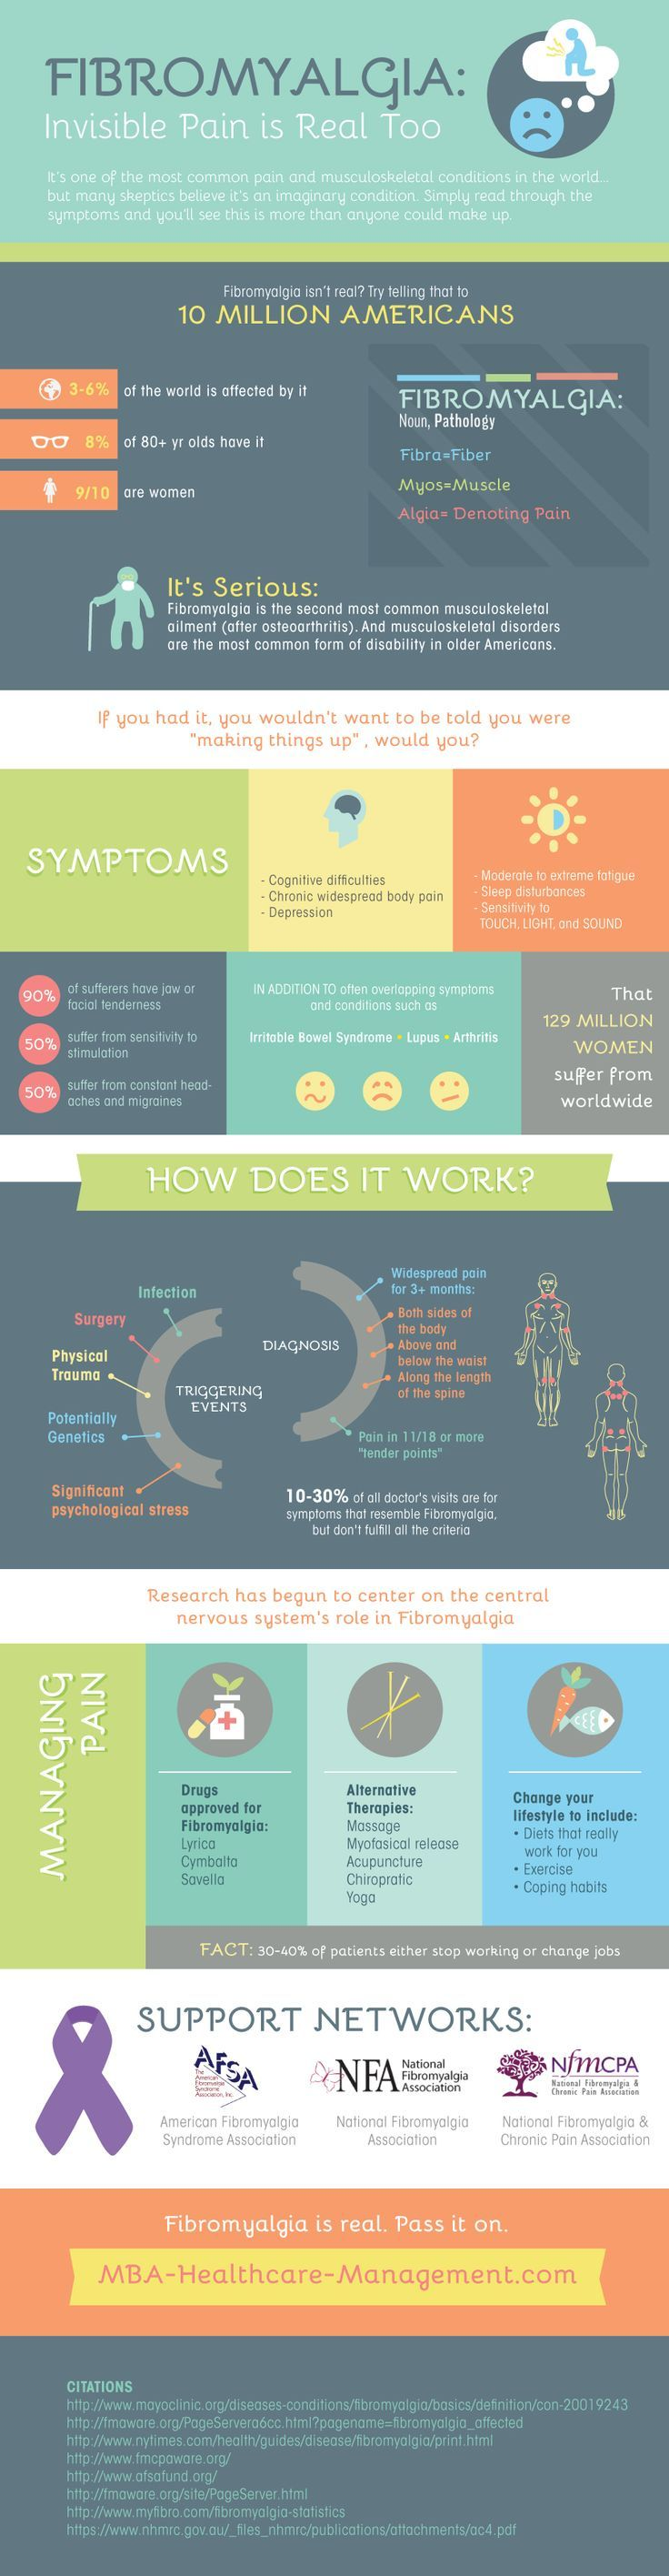 "Fibromyalgia pain relief  Fibromyalgia Infographic ""Fibromyalgia affects as many as 10 million Americans ages 18 and older, and 3% to 6% of the global population. Ouch! This infographic reveals what you need to know about this debilitating affliction, and what to do about it to manage the pain:"""